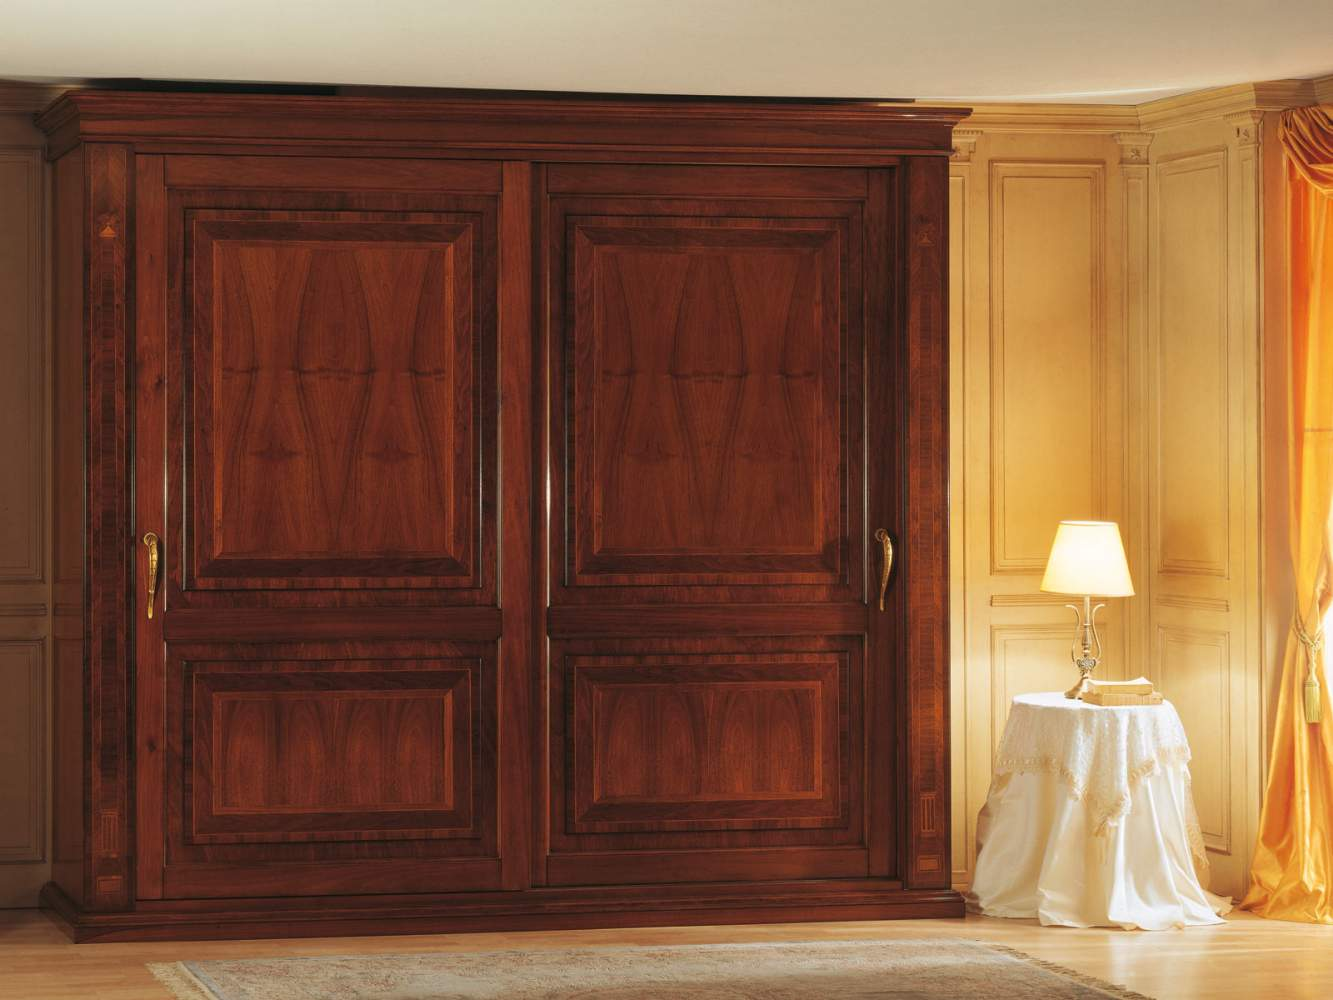 19th century french bedroom, wardrobe with two doors inlaid